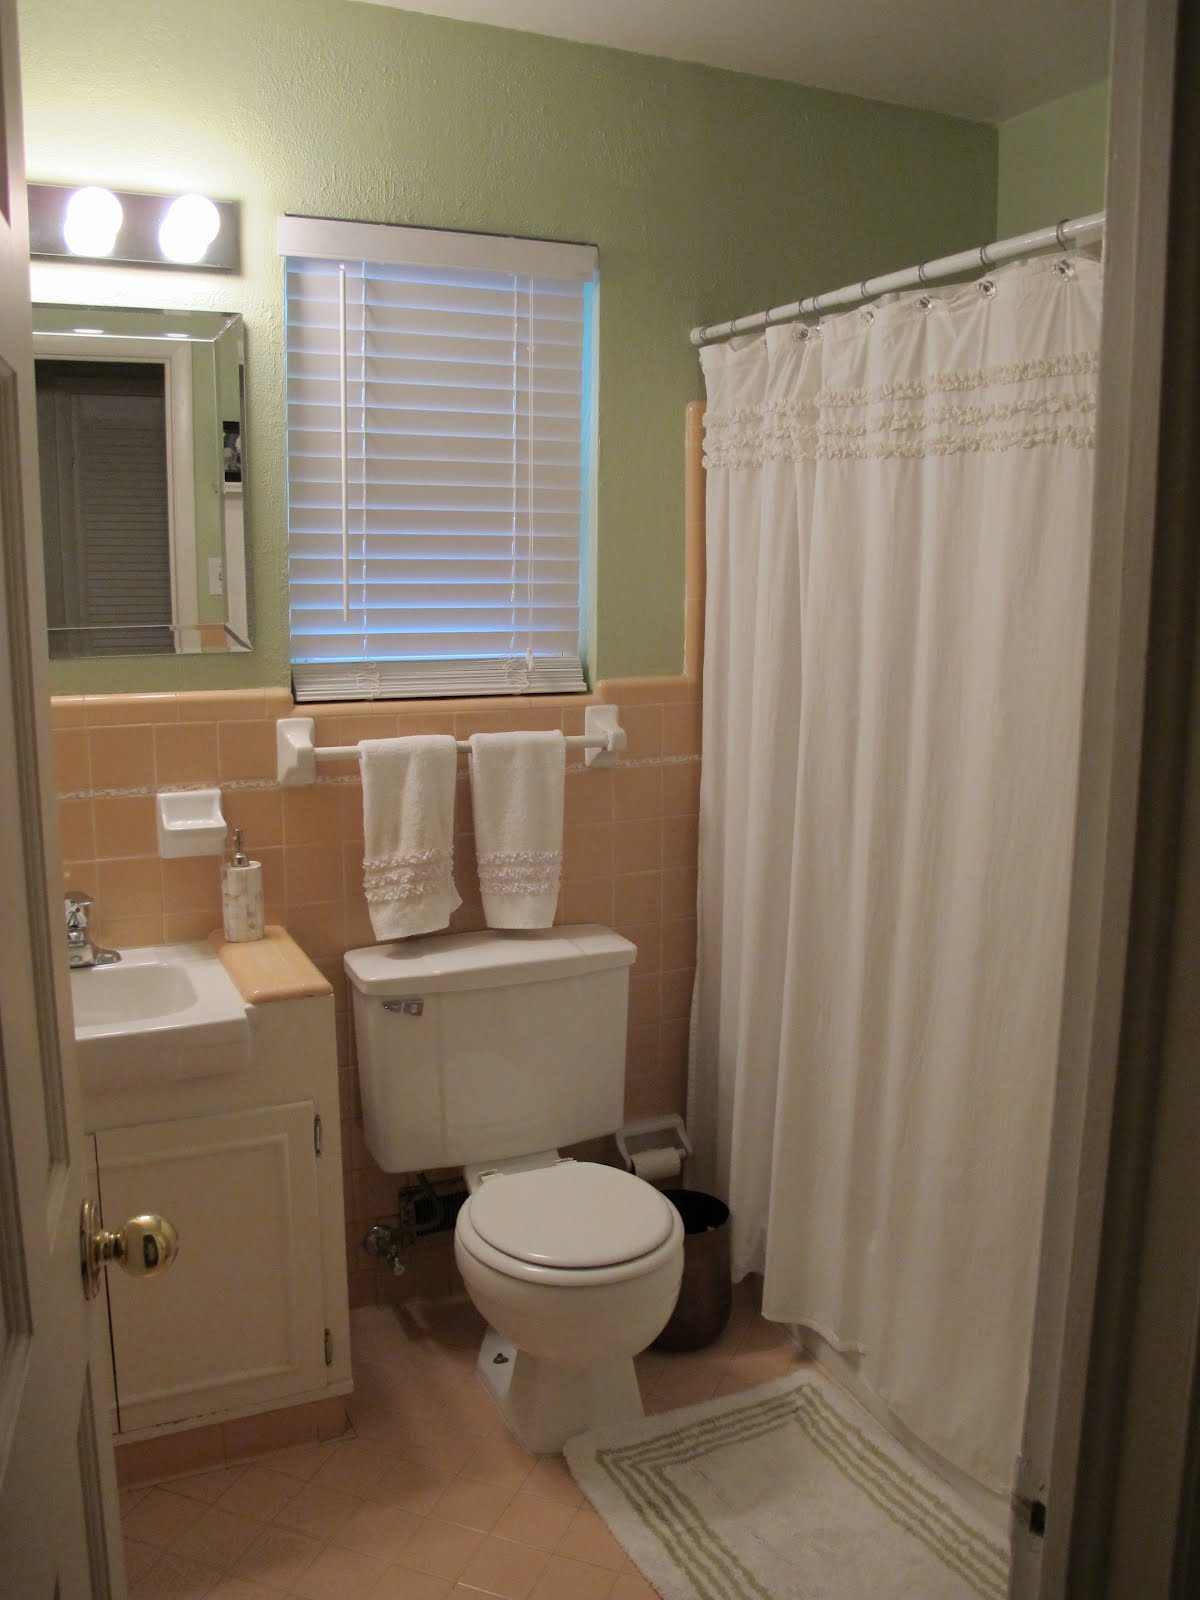 So Happy Together Bathroom Makeover